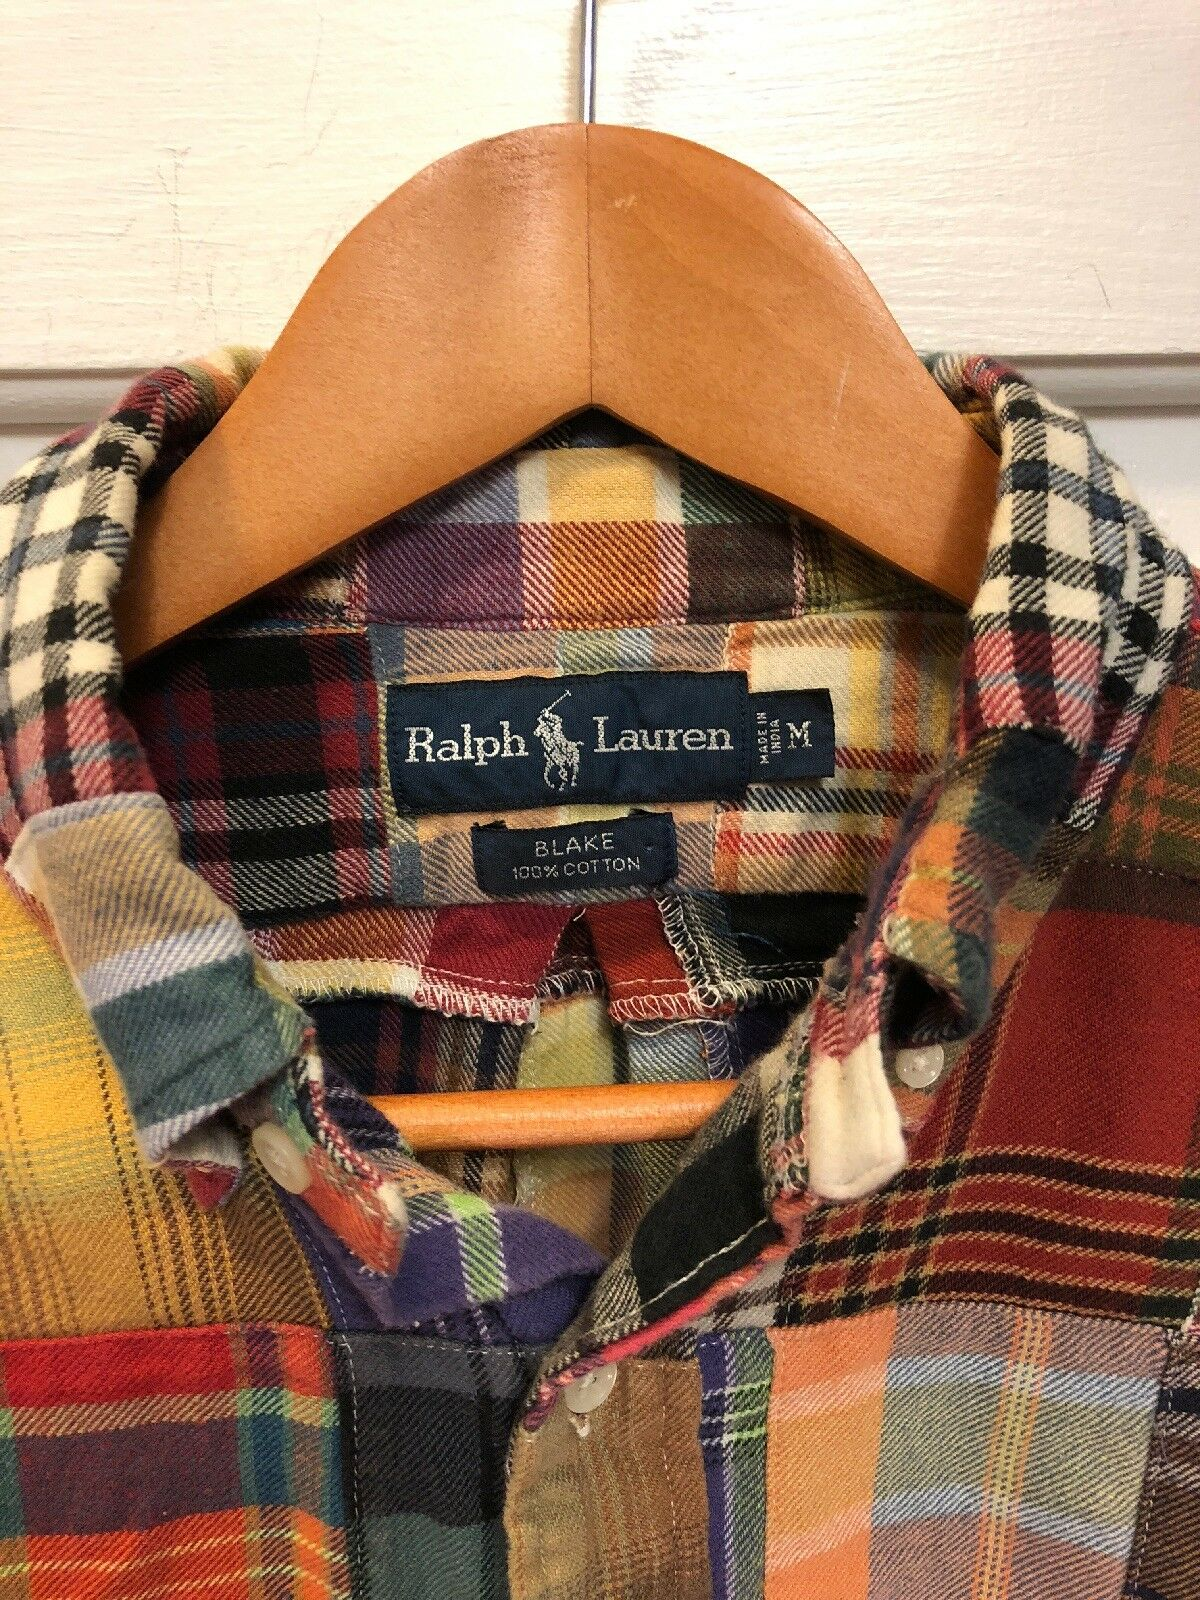 Ralph Lauren Blake Patchwork Flannel M Rare Flawless bluee Label